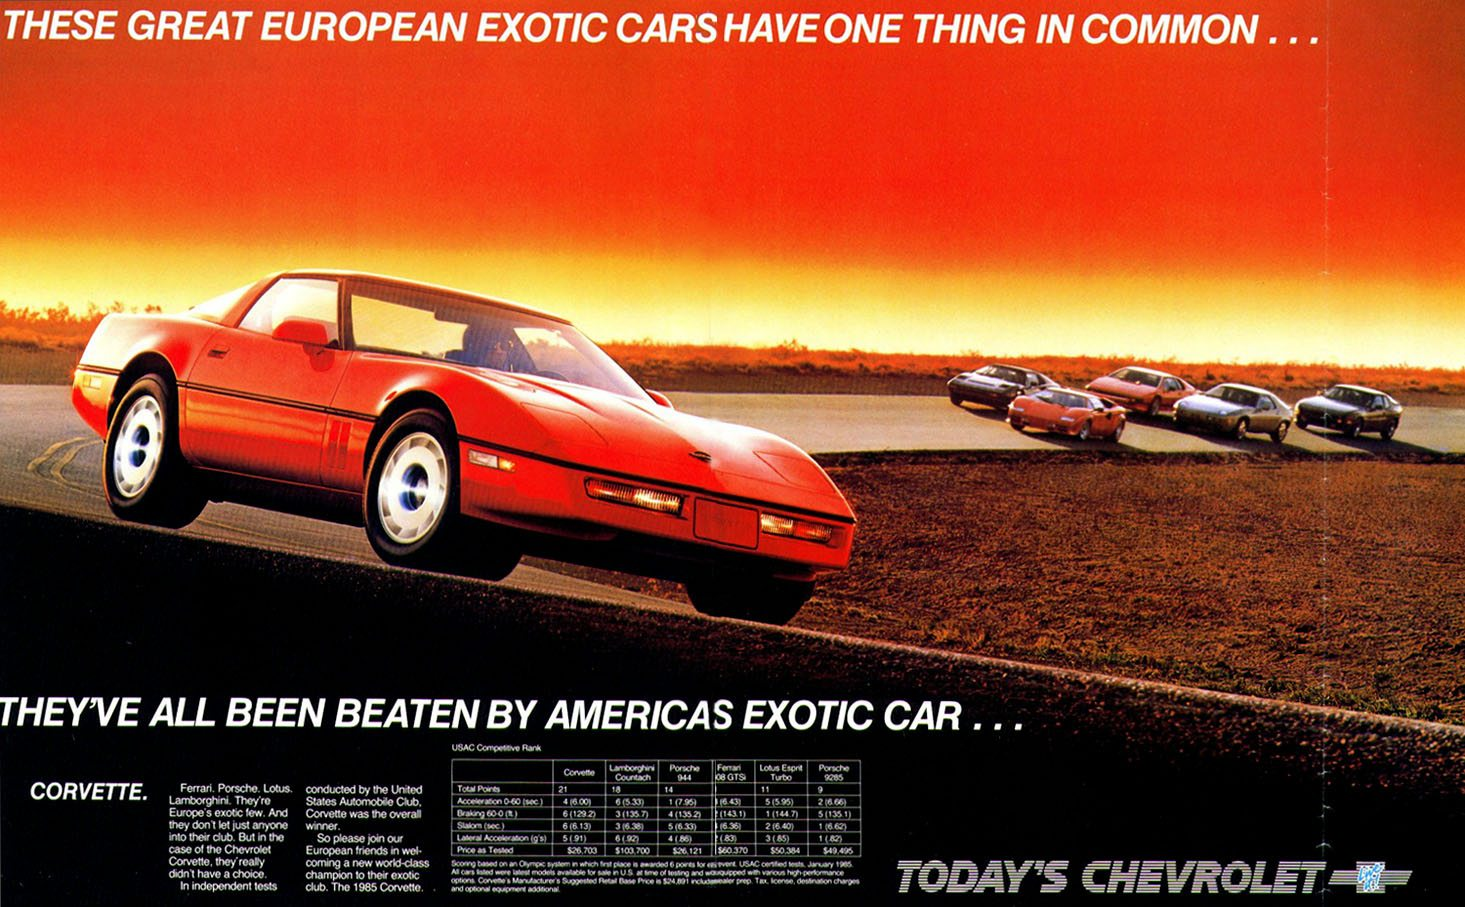 Original GM add for the 1985 Chevrolet Corvette.